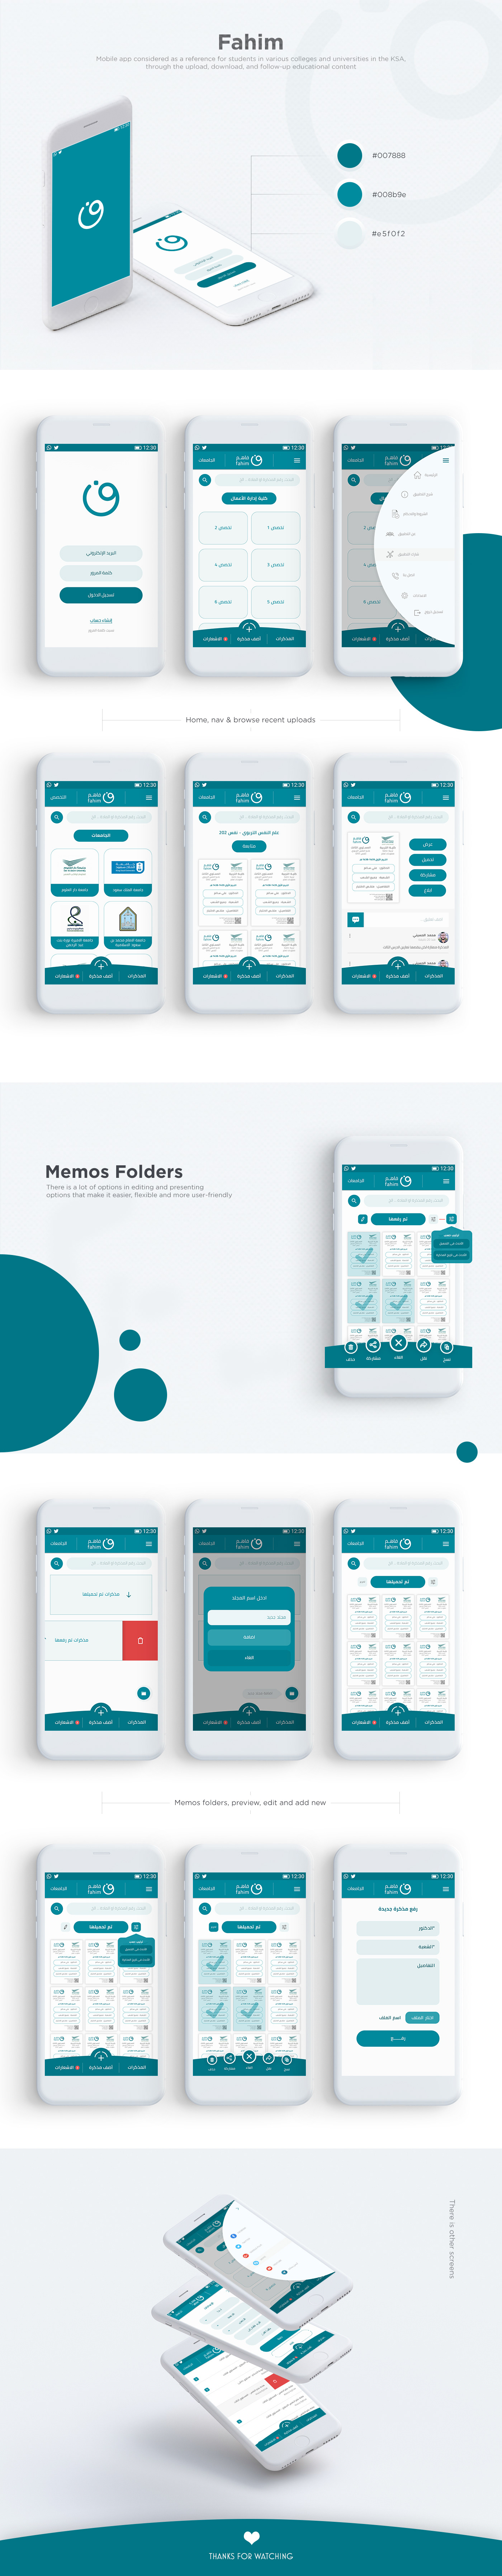 Android App Mobile apps ui ux ui design UX design educational app Education programming  Android Project UI